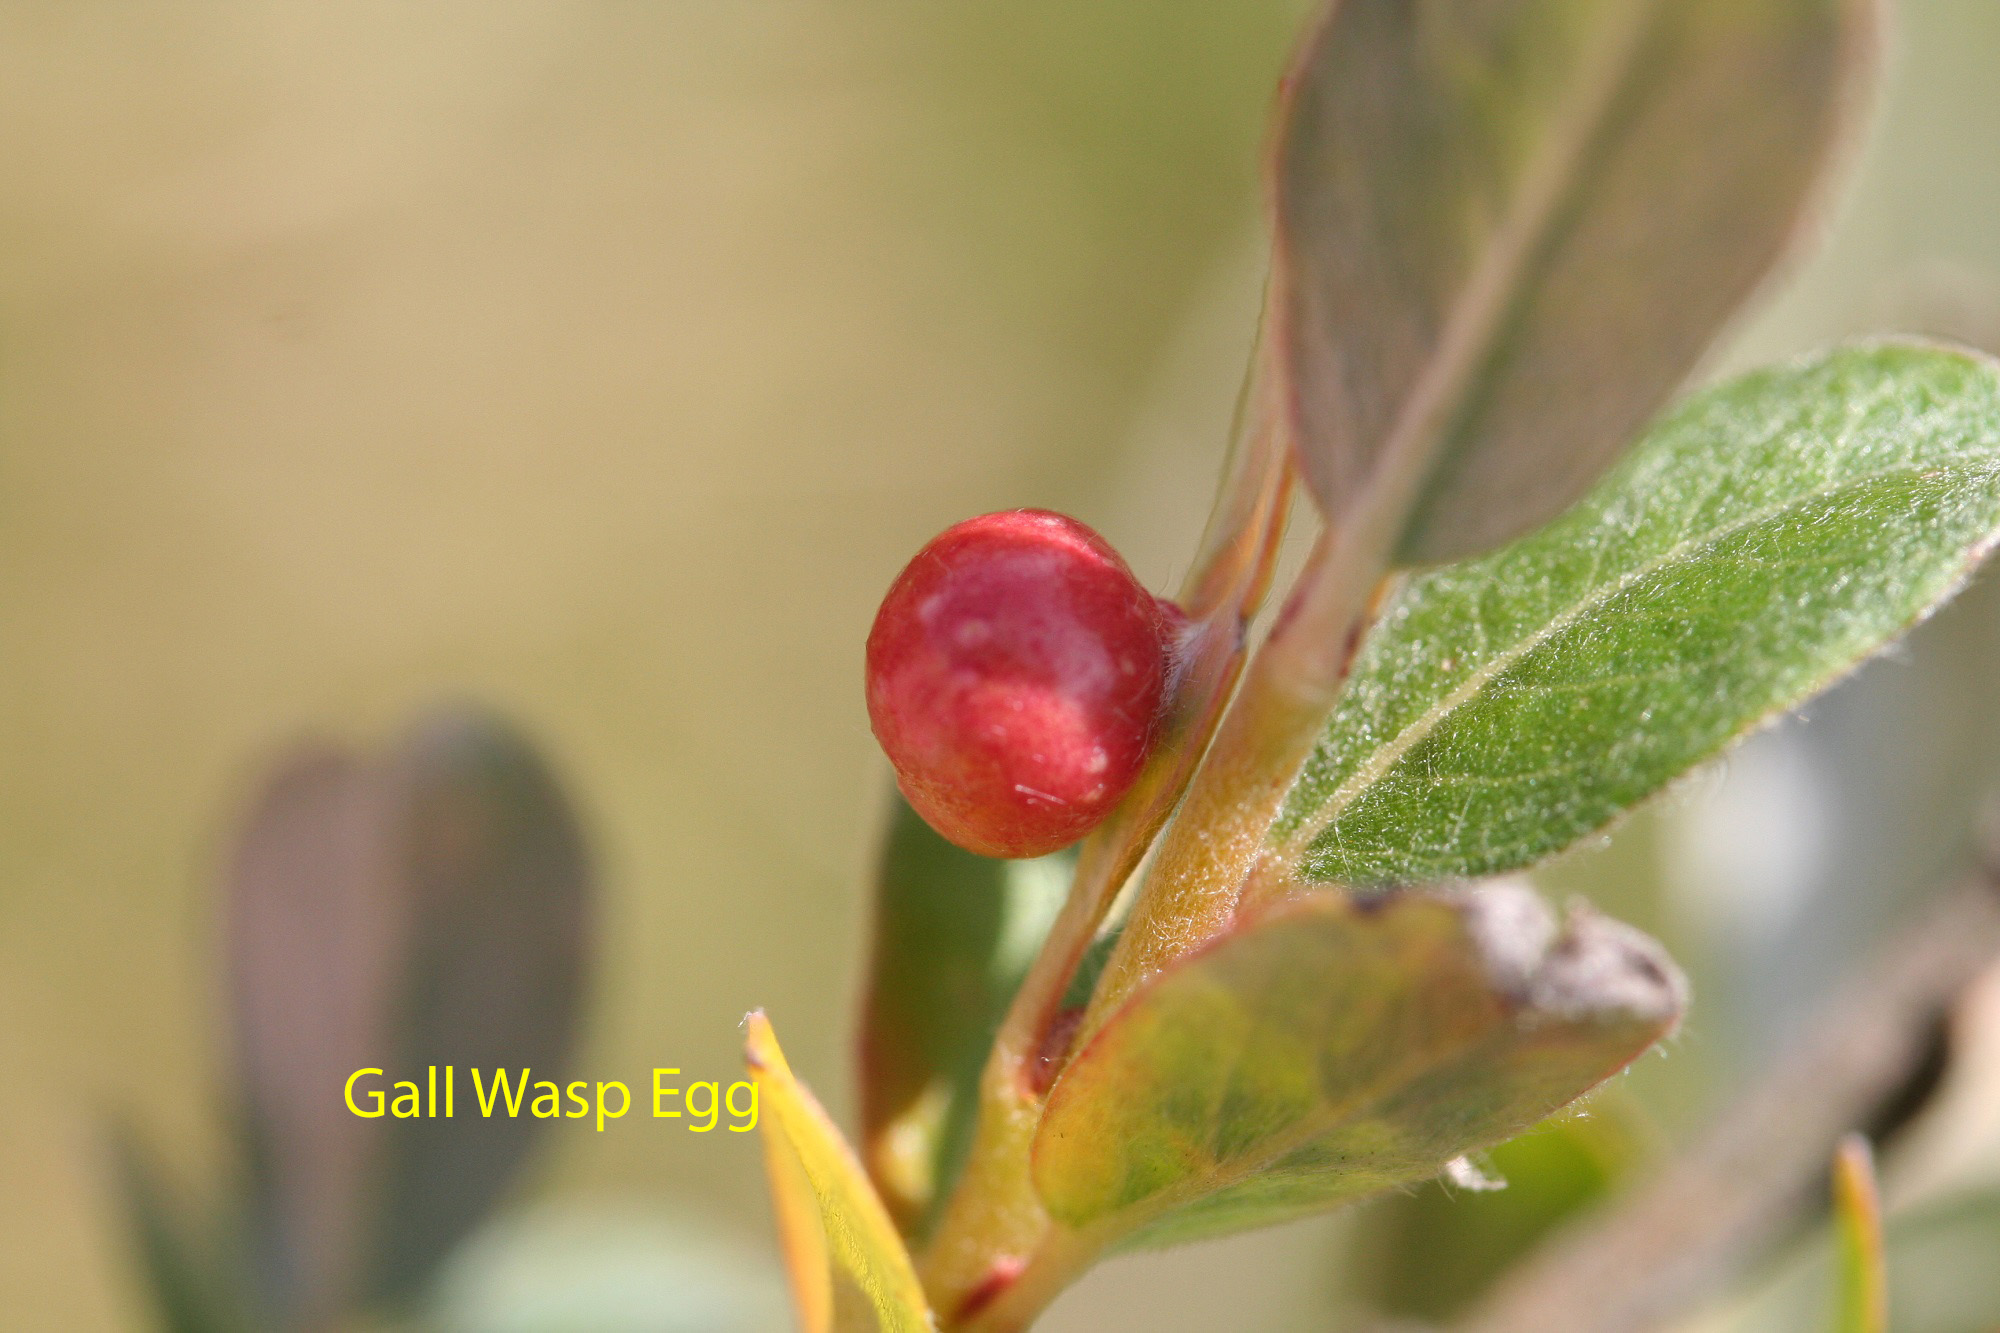 gall-wasp-egg-on-ground-willow-2-copy-2bfde290fb76931efaf84ccc86fe90297bc25d77